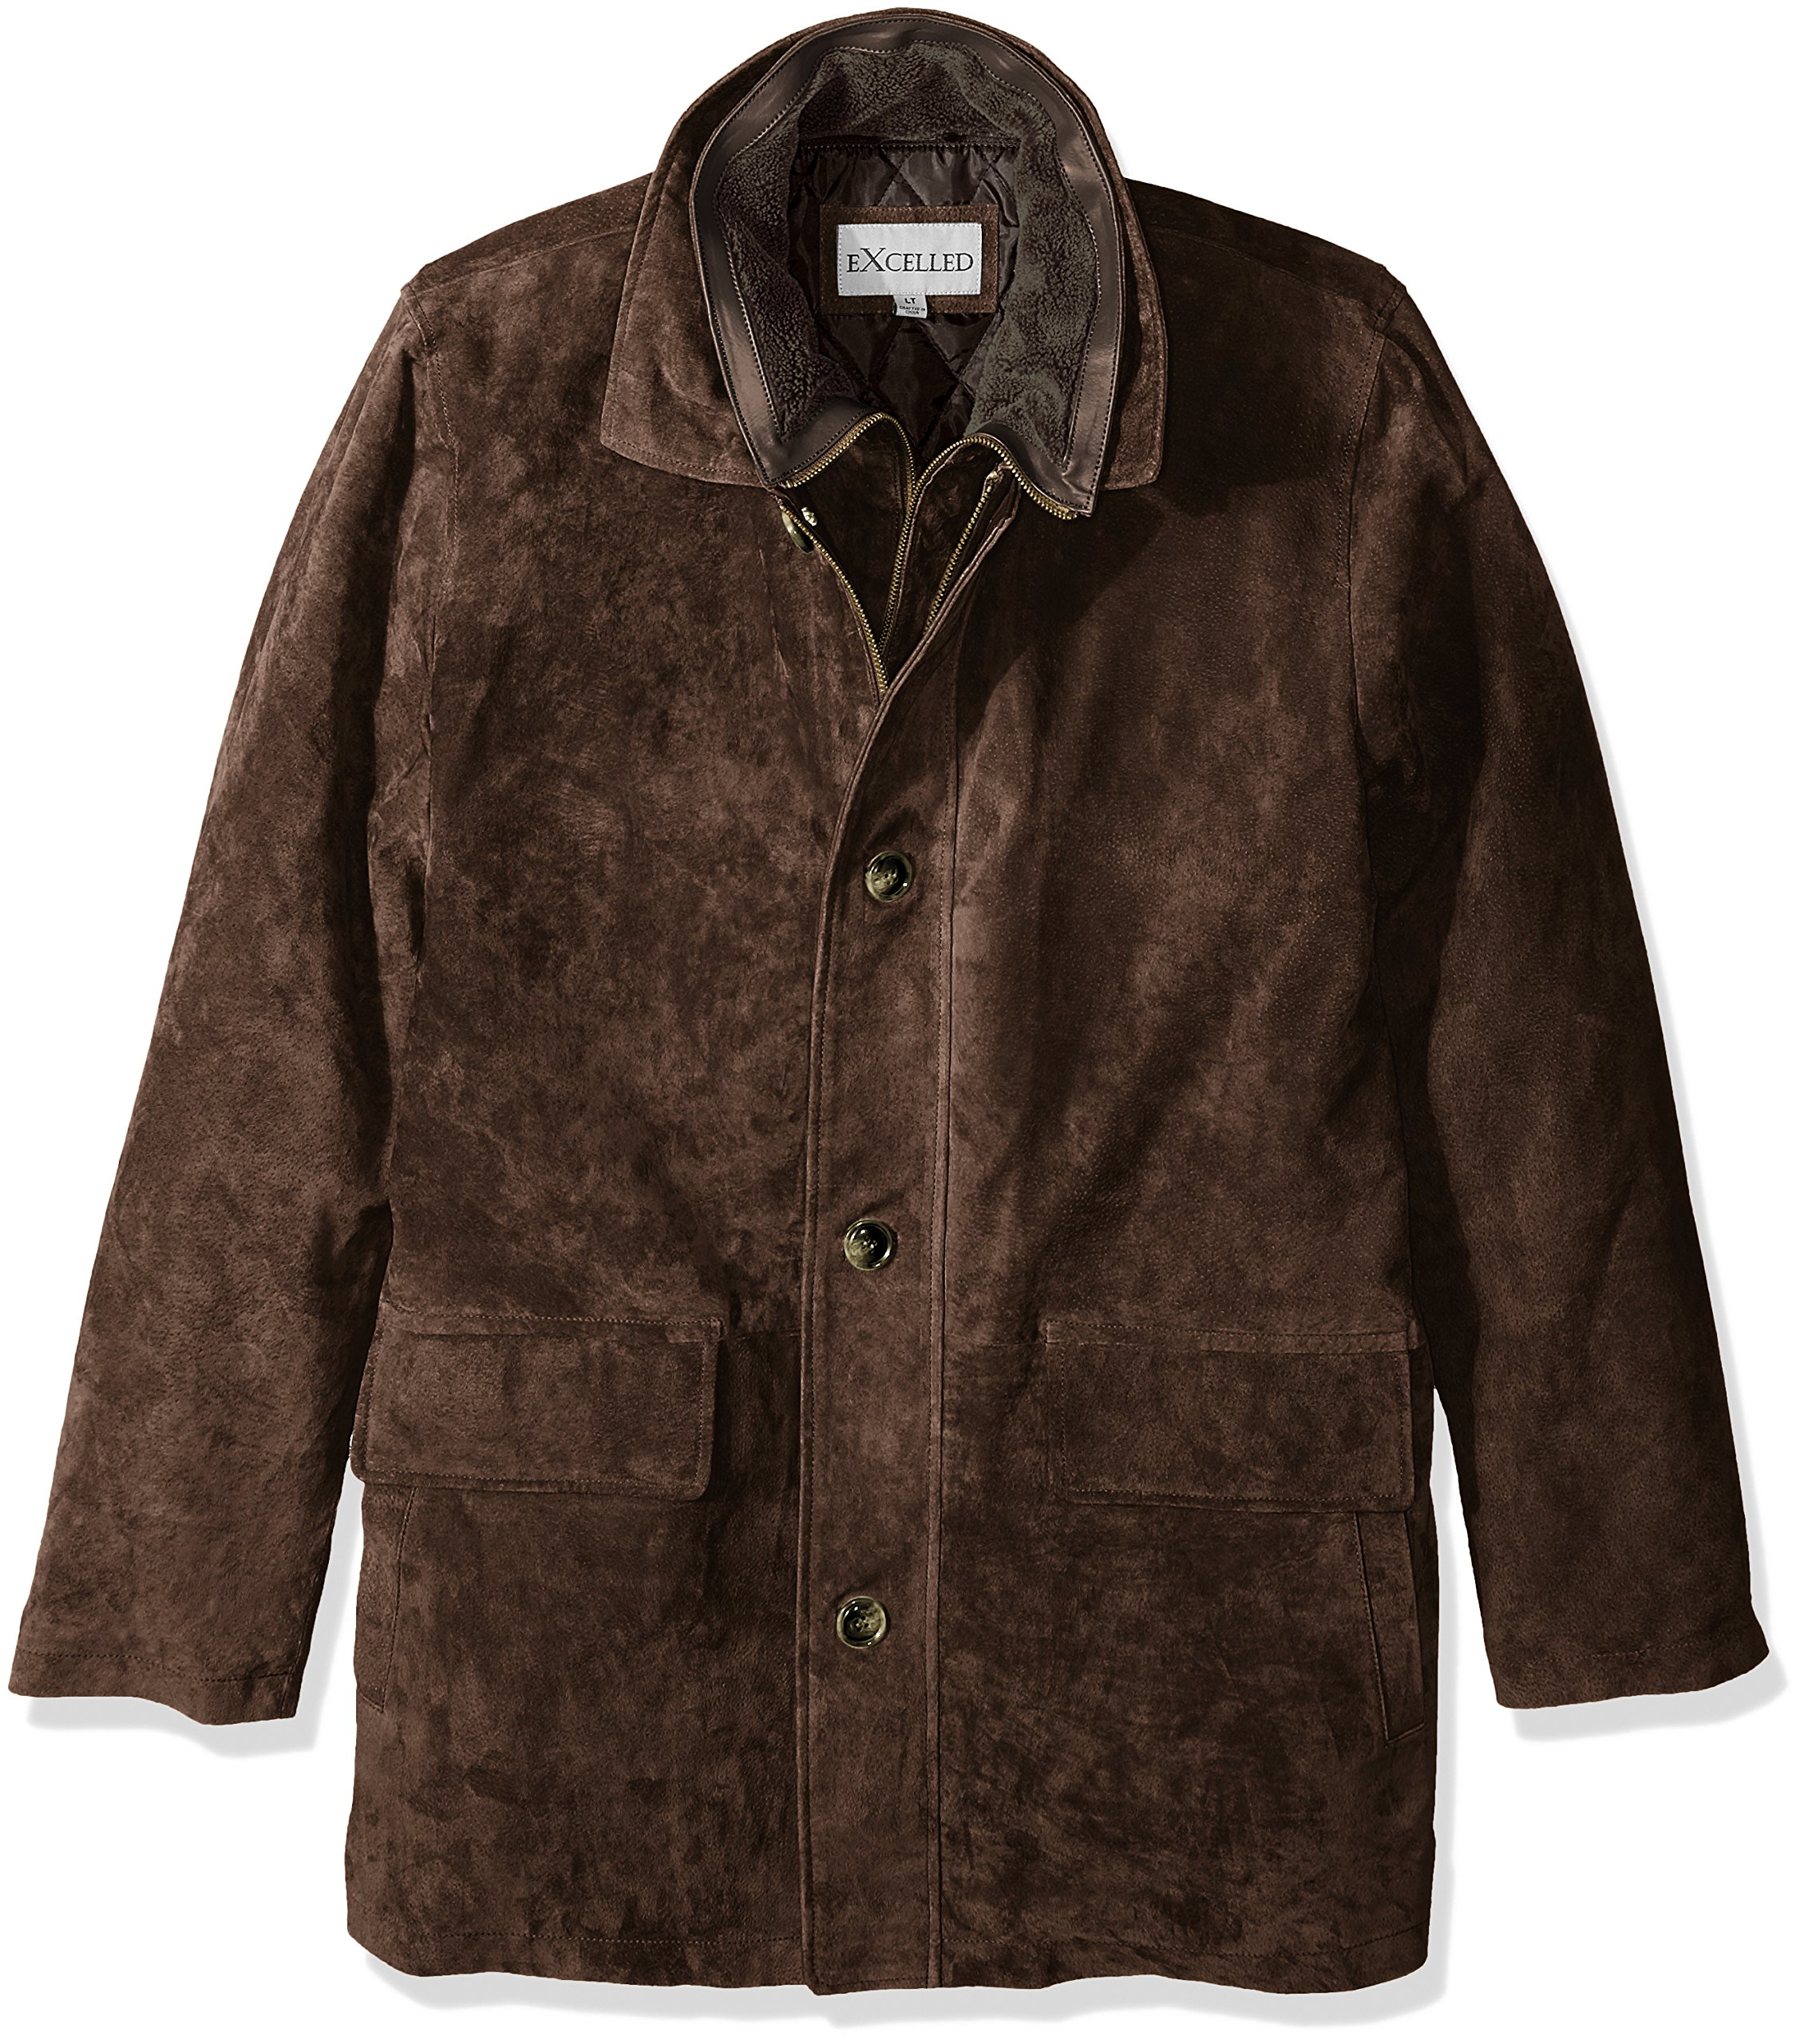 Excelled Men's Big and Tall Suede Feel Jacket, Brown, 4XL